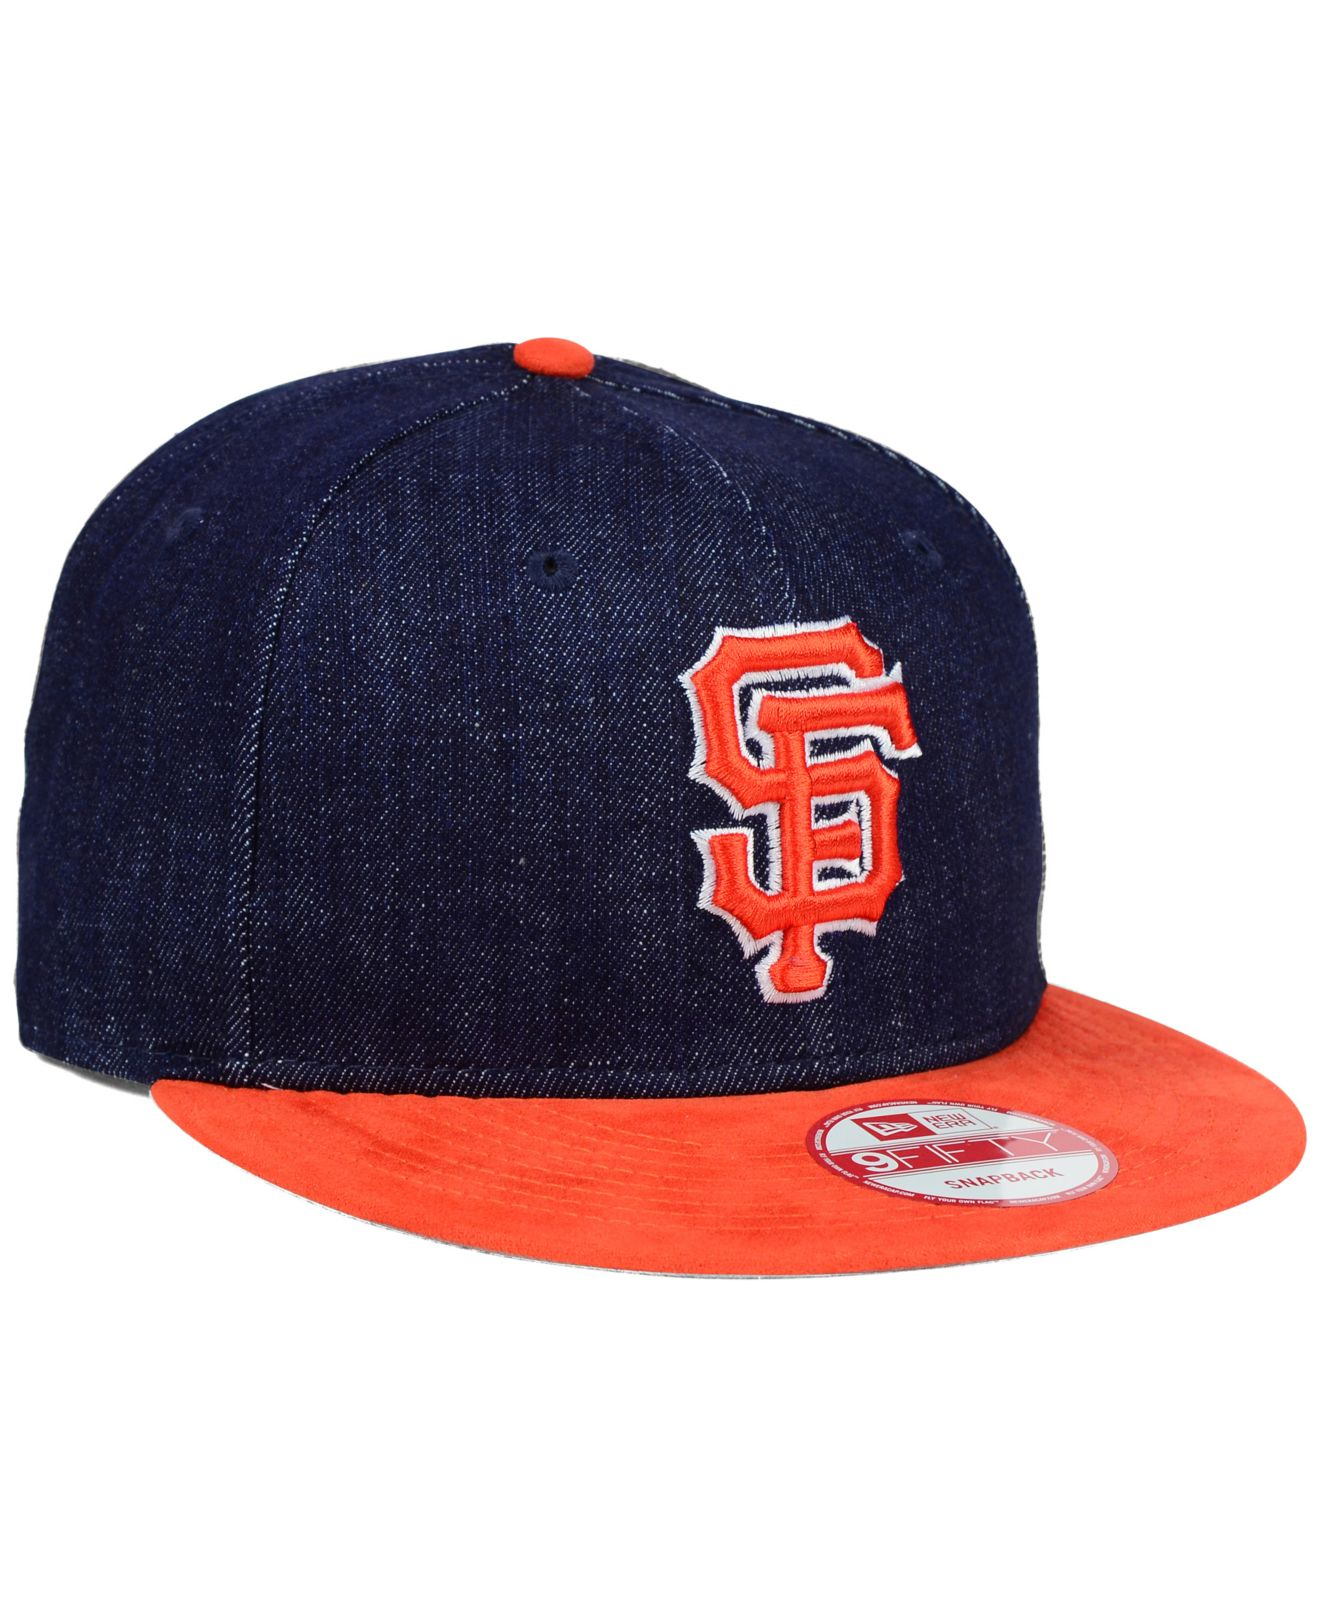 release date 867b0 6b3bf KTZ San Francisco Giants Denim Suede 9fifty Snapback Cap in Blue for ...